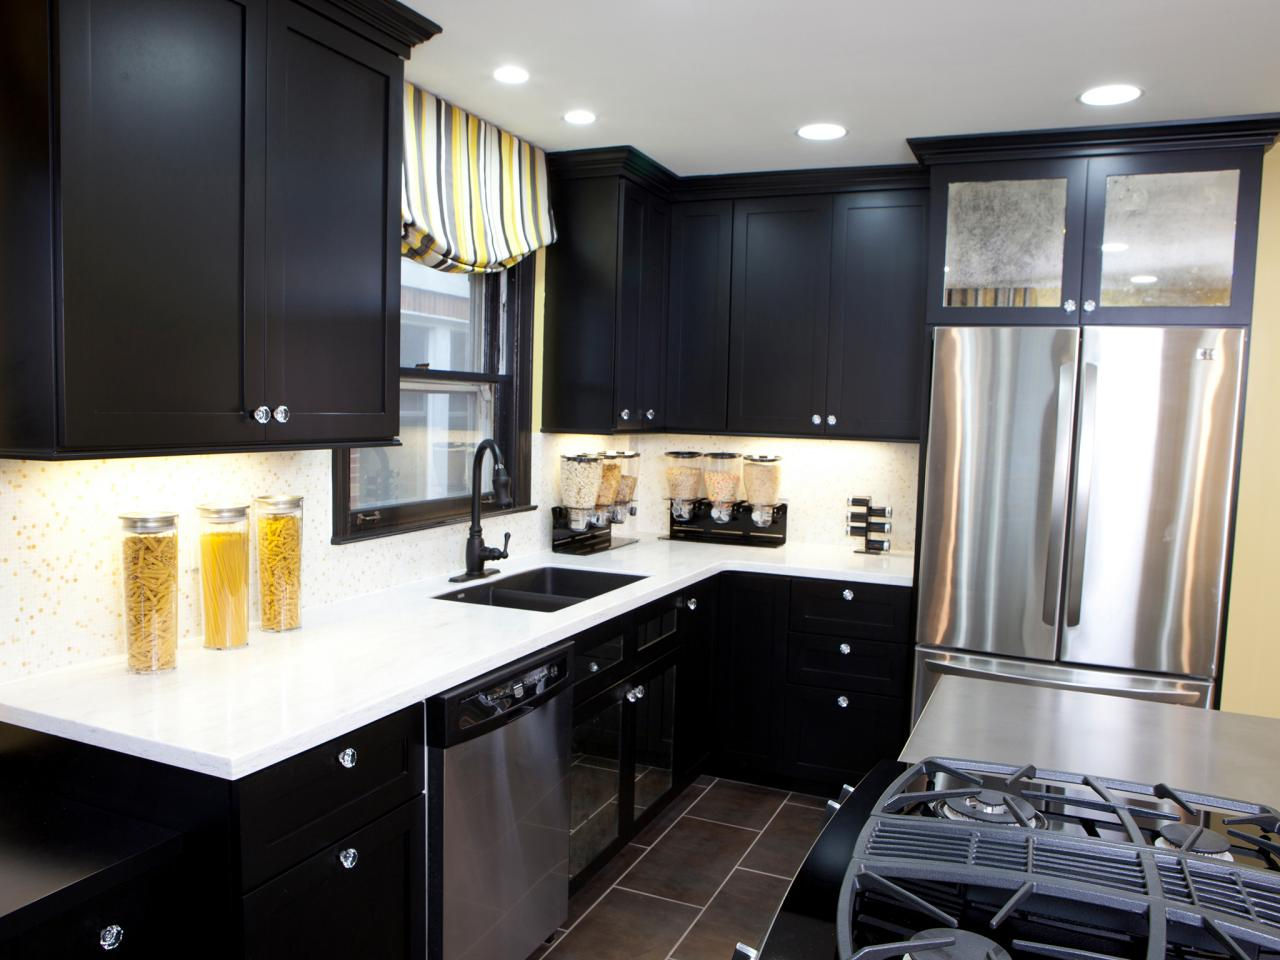 h2dsw104_after-with-black-kitchen-cabinets_s4x3-jpg-rend-hgtvcom-1280-960